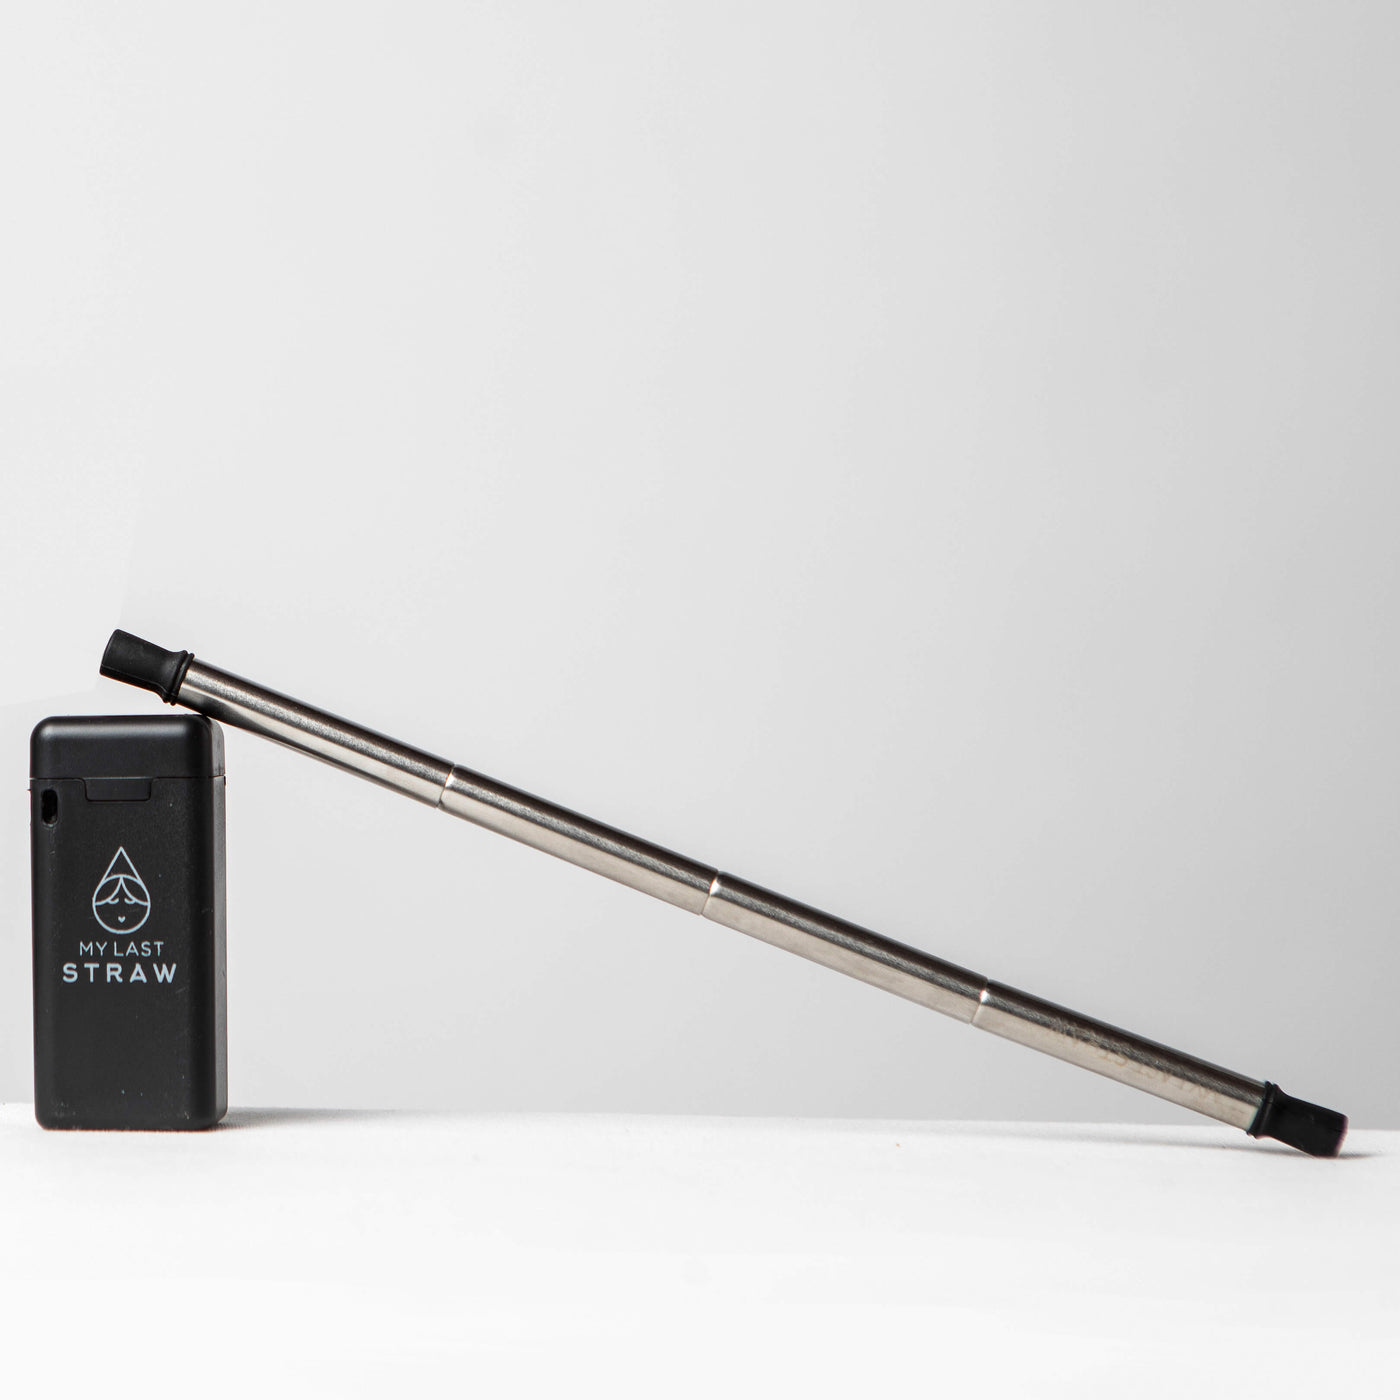 Black Case Portable Collapsible Reusable Straw - My Last Straw